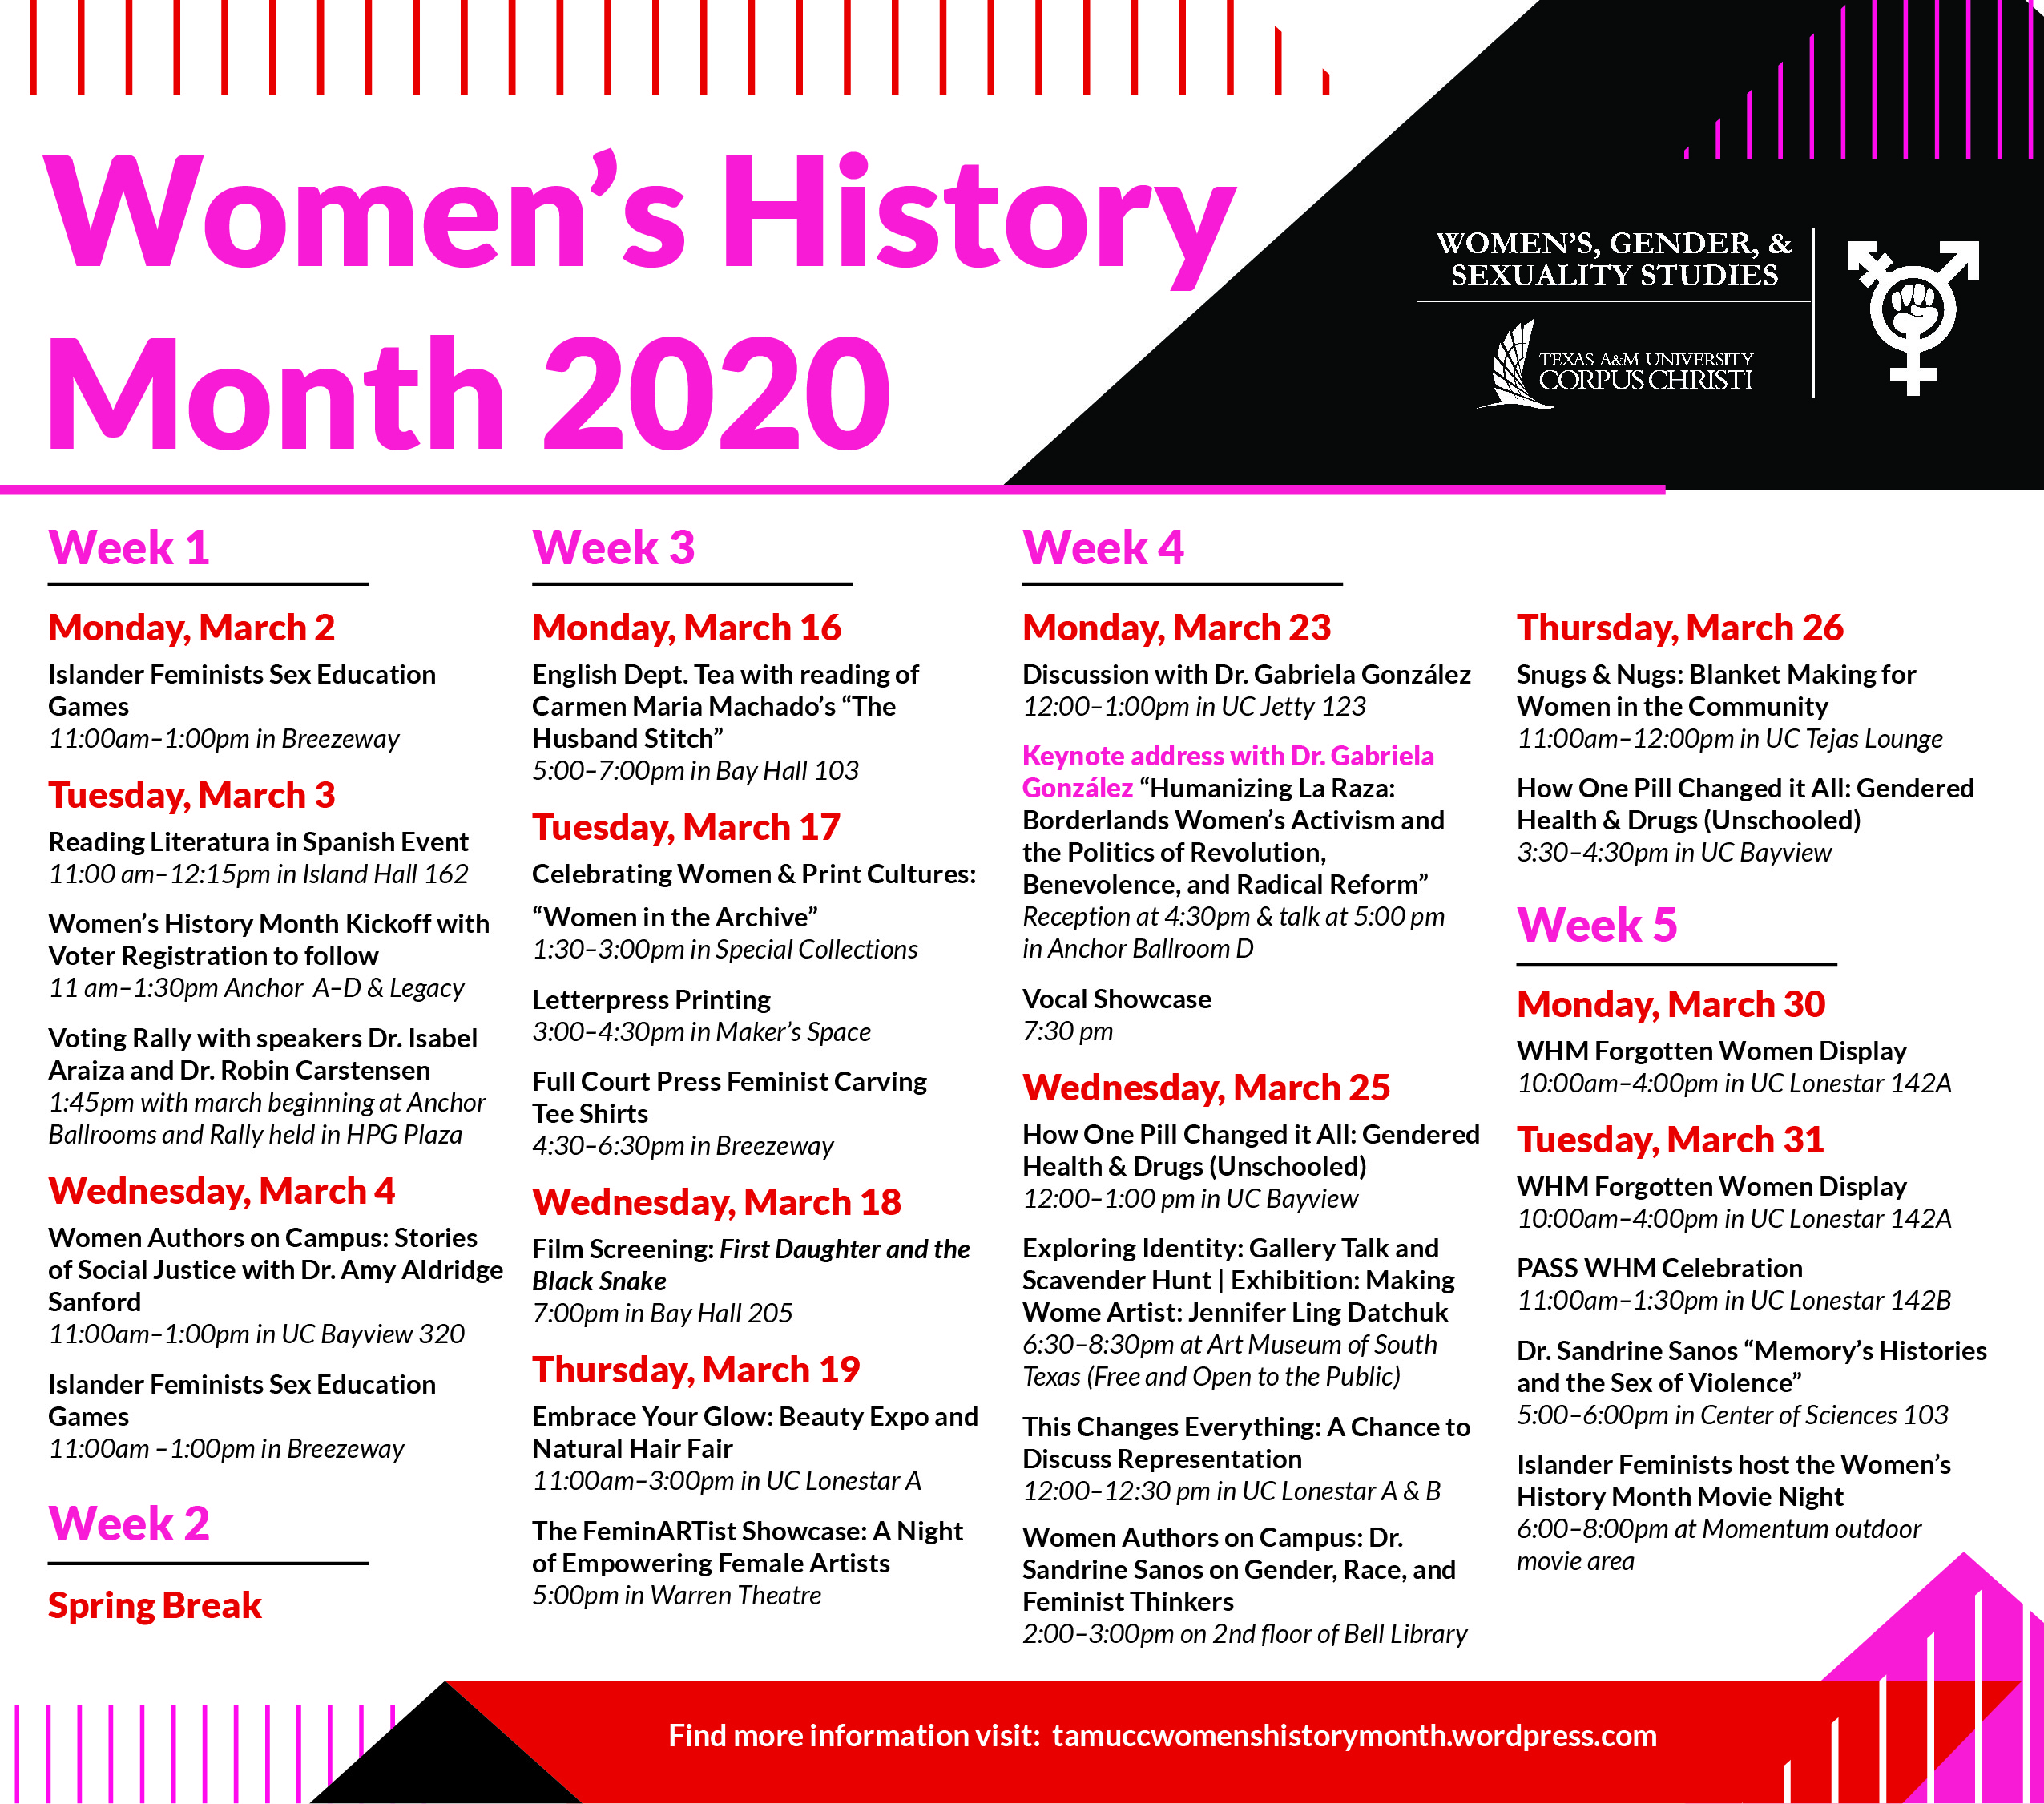 Image of the calendar of events for Women's History Month